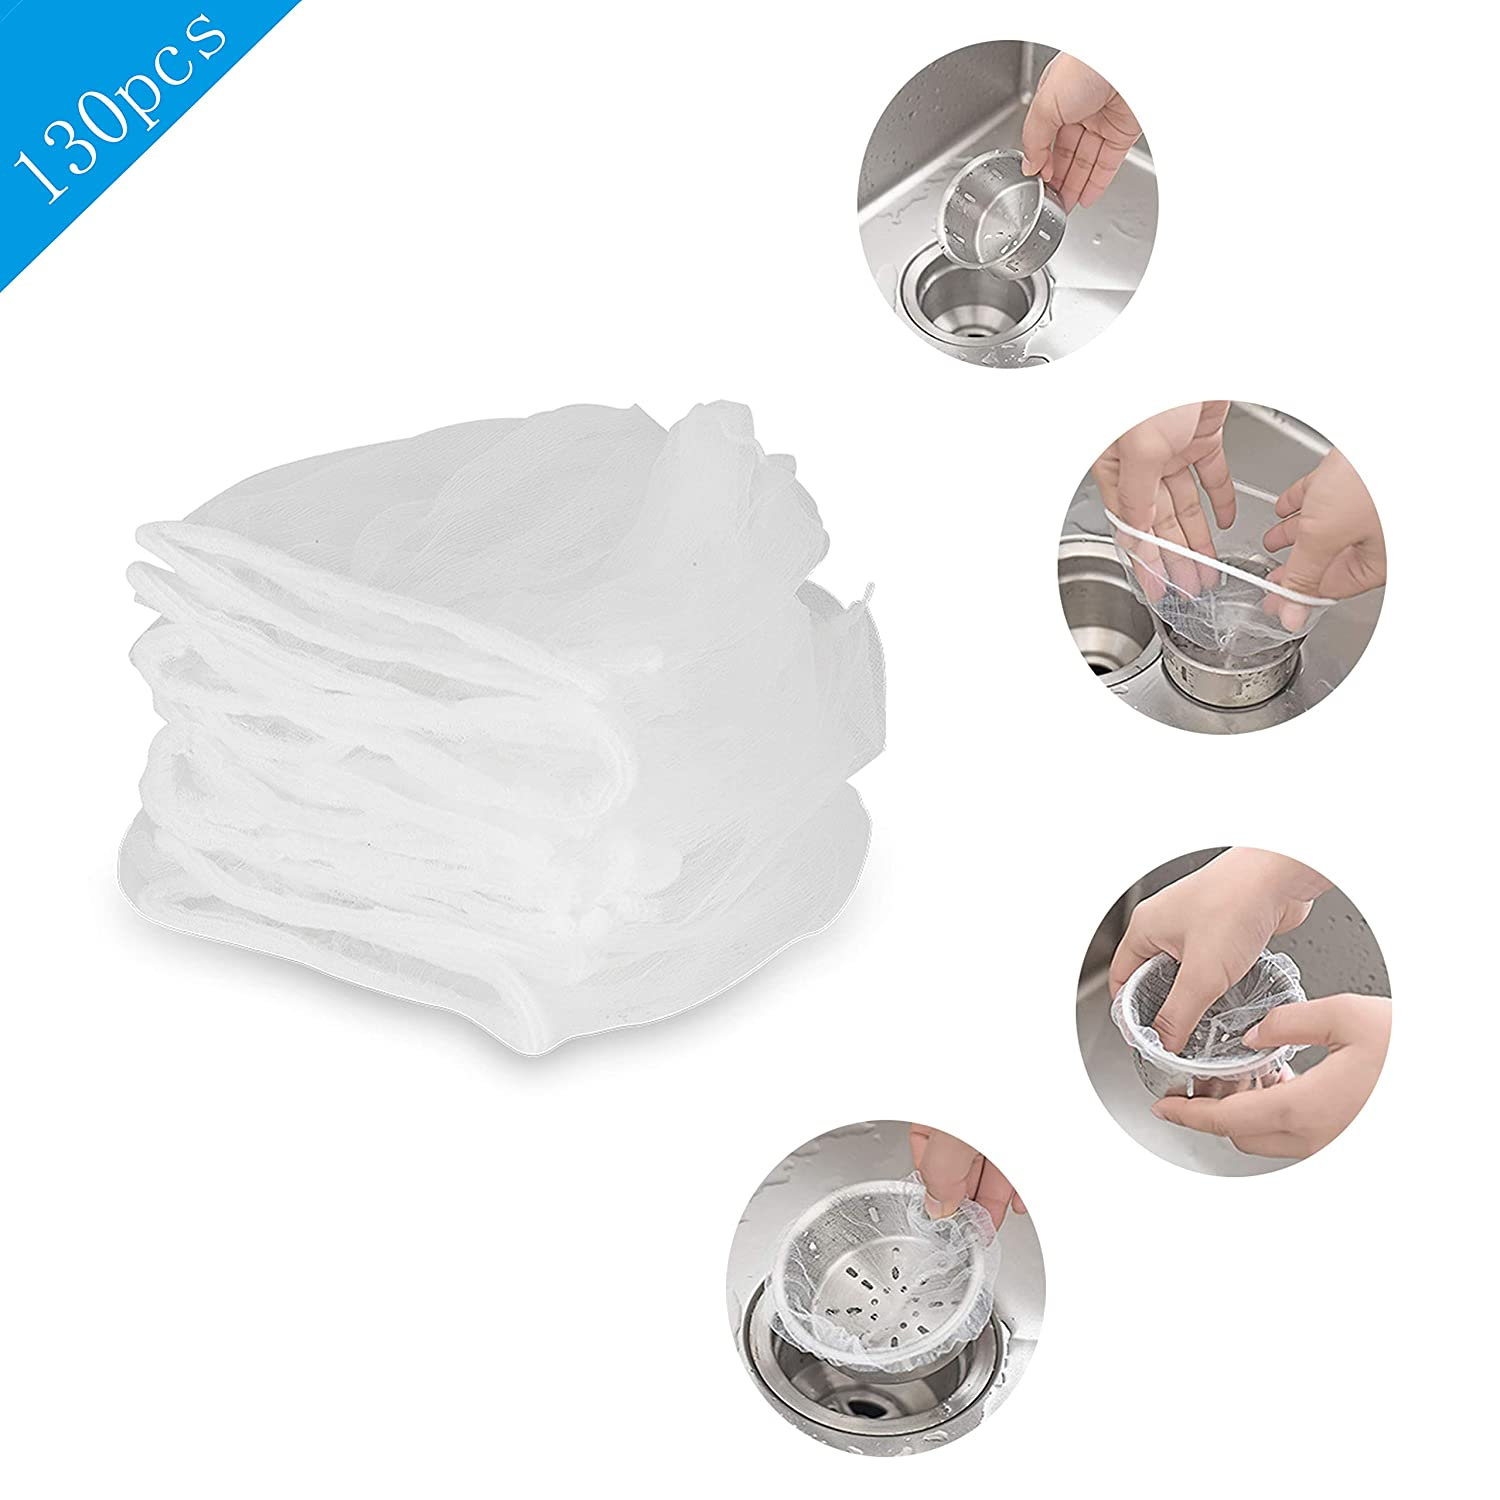 130 PCS Sink Strainer Bag Disposable Mesh Sink Strainer Bags for Kitchen and Bathroom White Suitable for all Sizes of Sinks